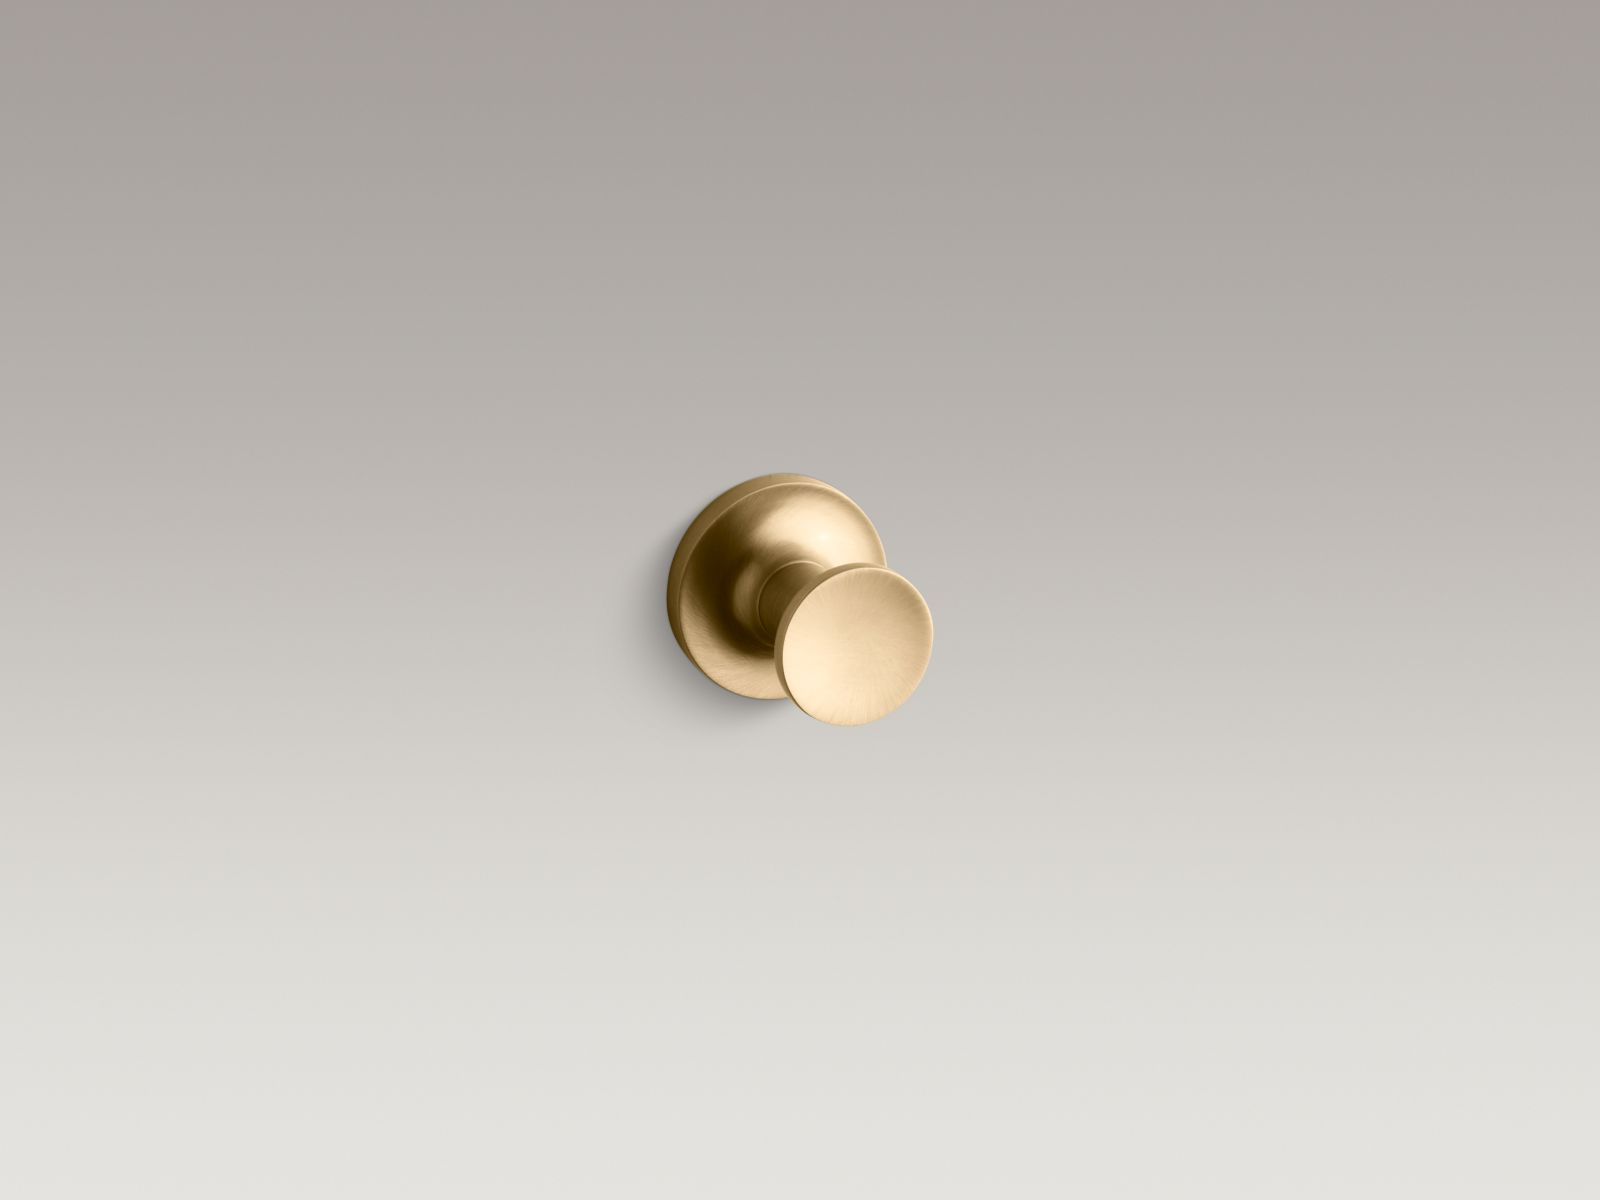 Kohler K-14443-BGD Purist Robe Hook Vibrant Moderne Brushed Gold